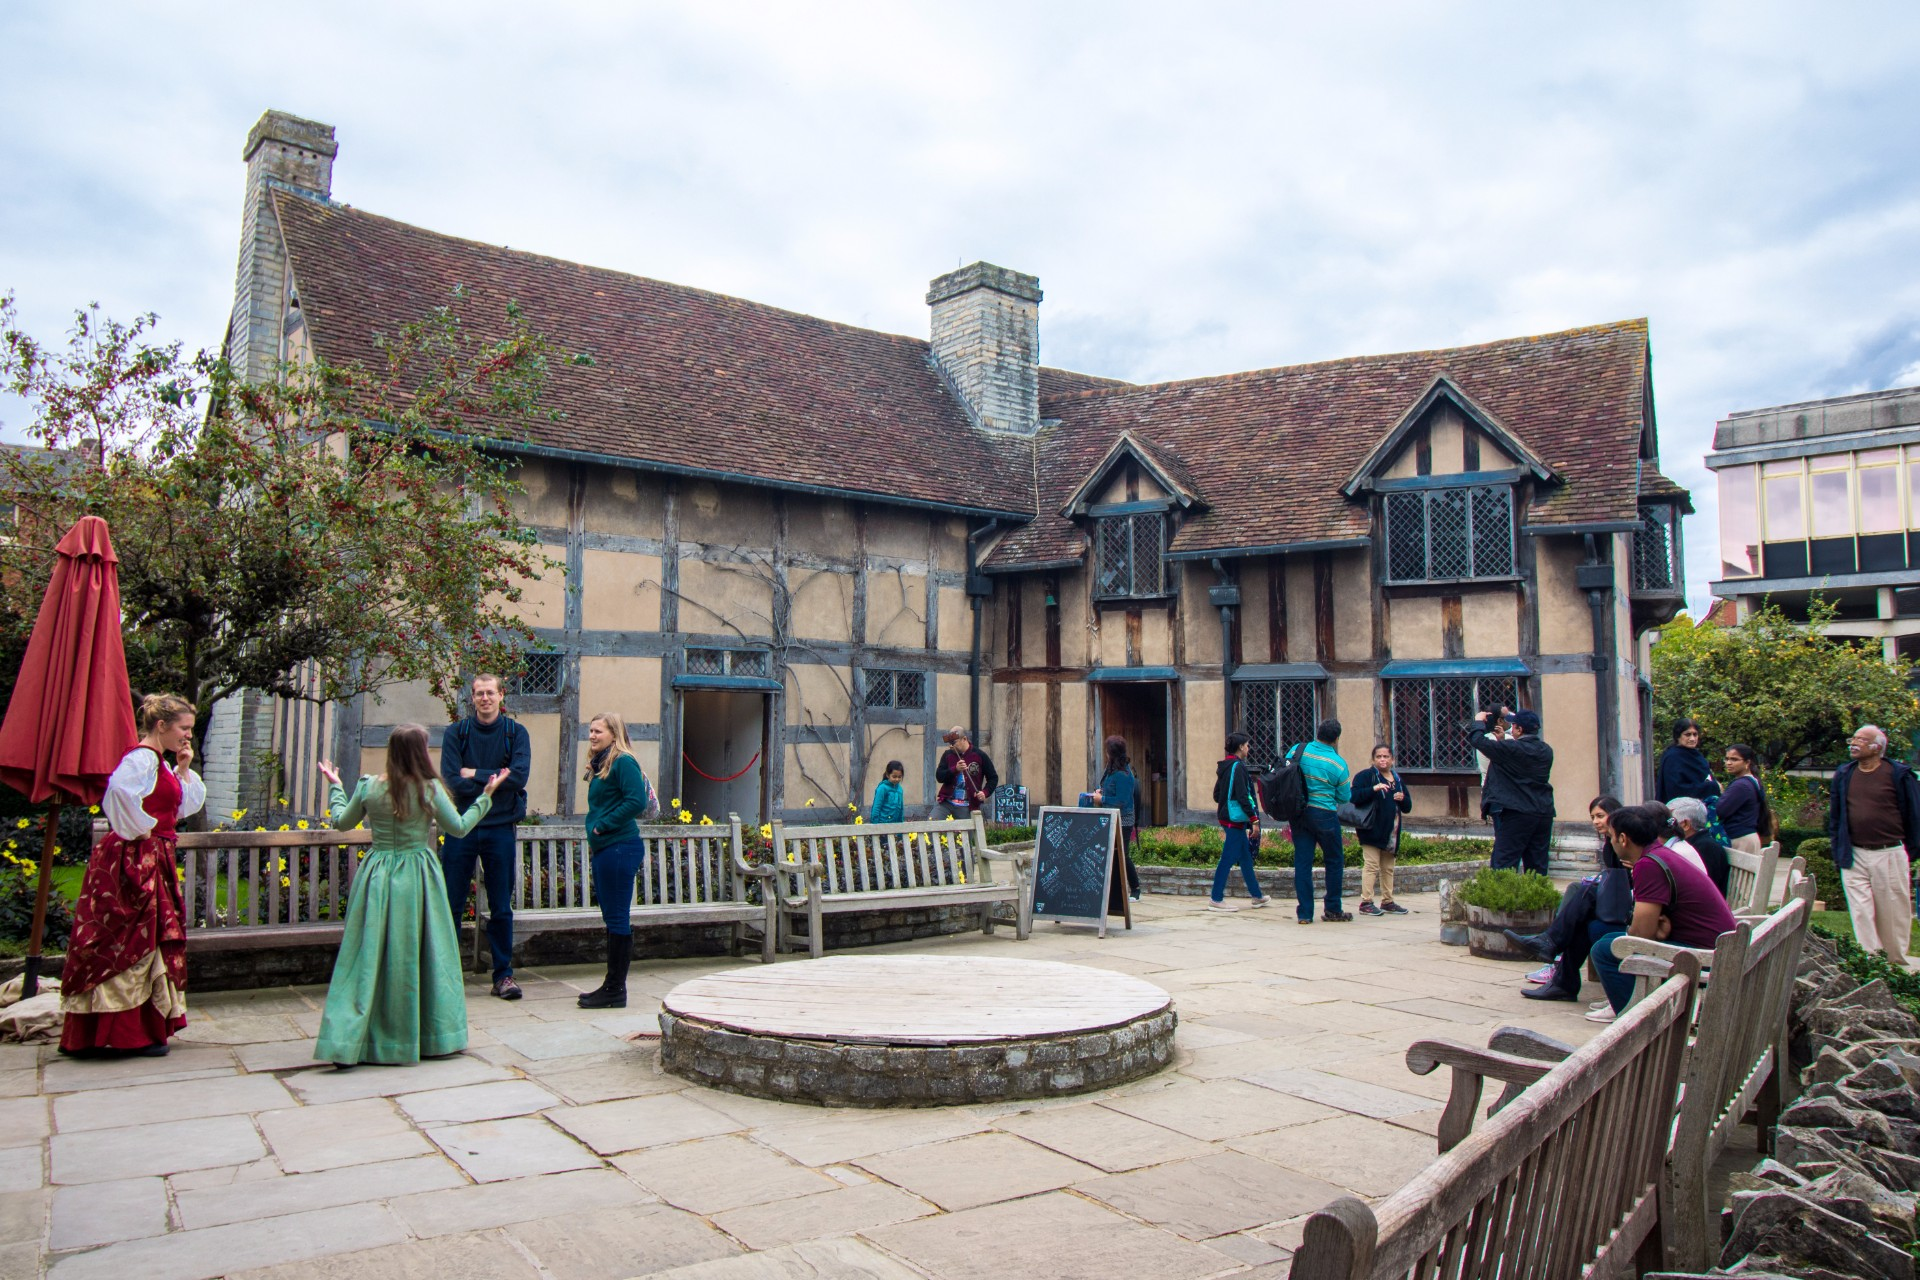 One Day in Shakespeare's Birthplace: Exploring Stratford-upon-Avon |  Faraway Lucy